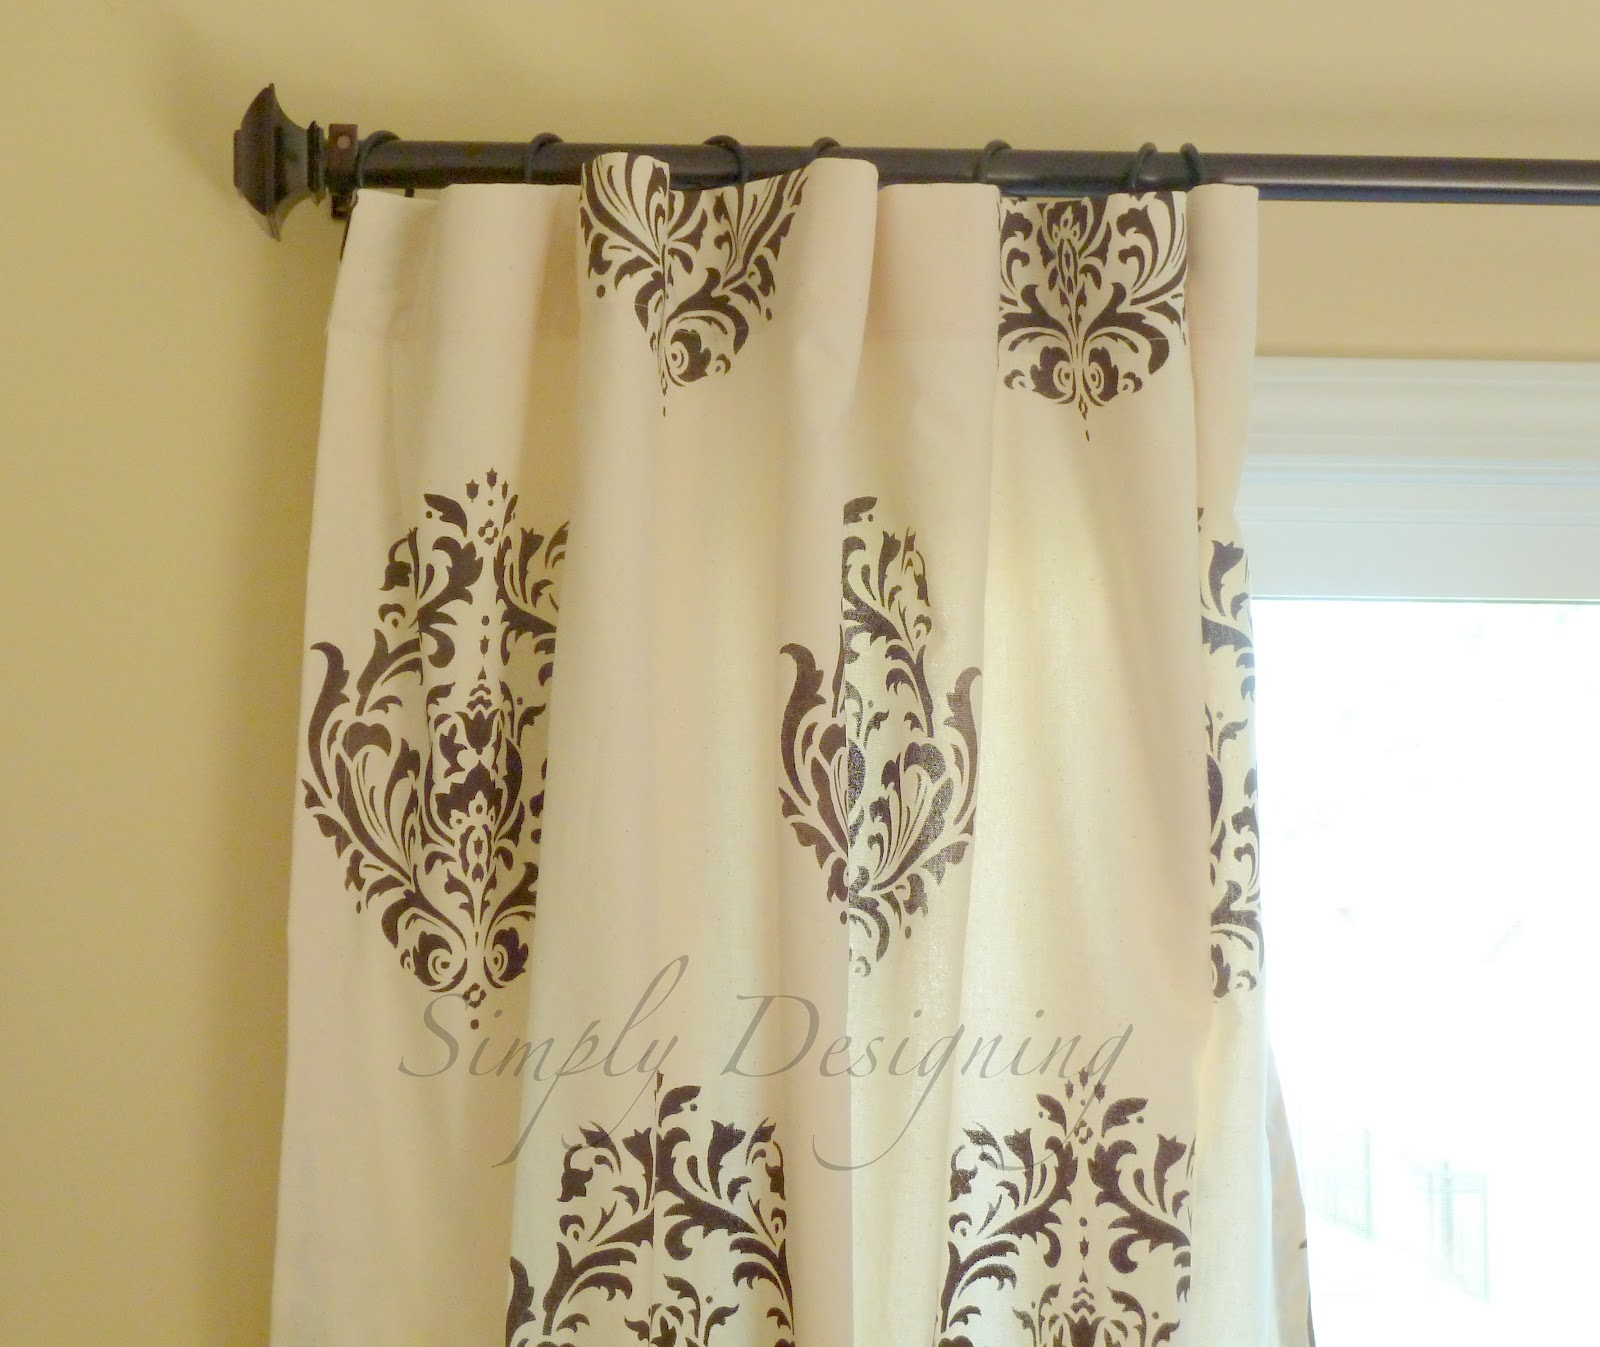 kitchen curtain best stainless steel sink diy stenciled curtains and a {giveaway} from cutting edge ...